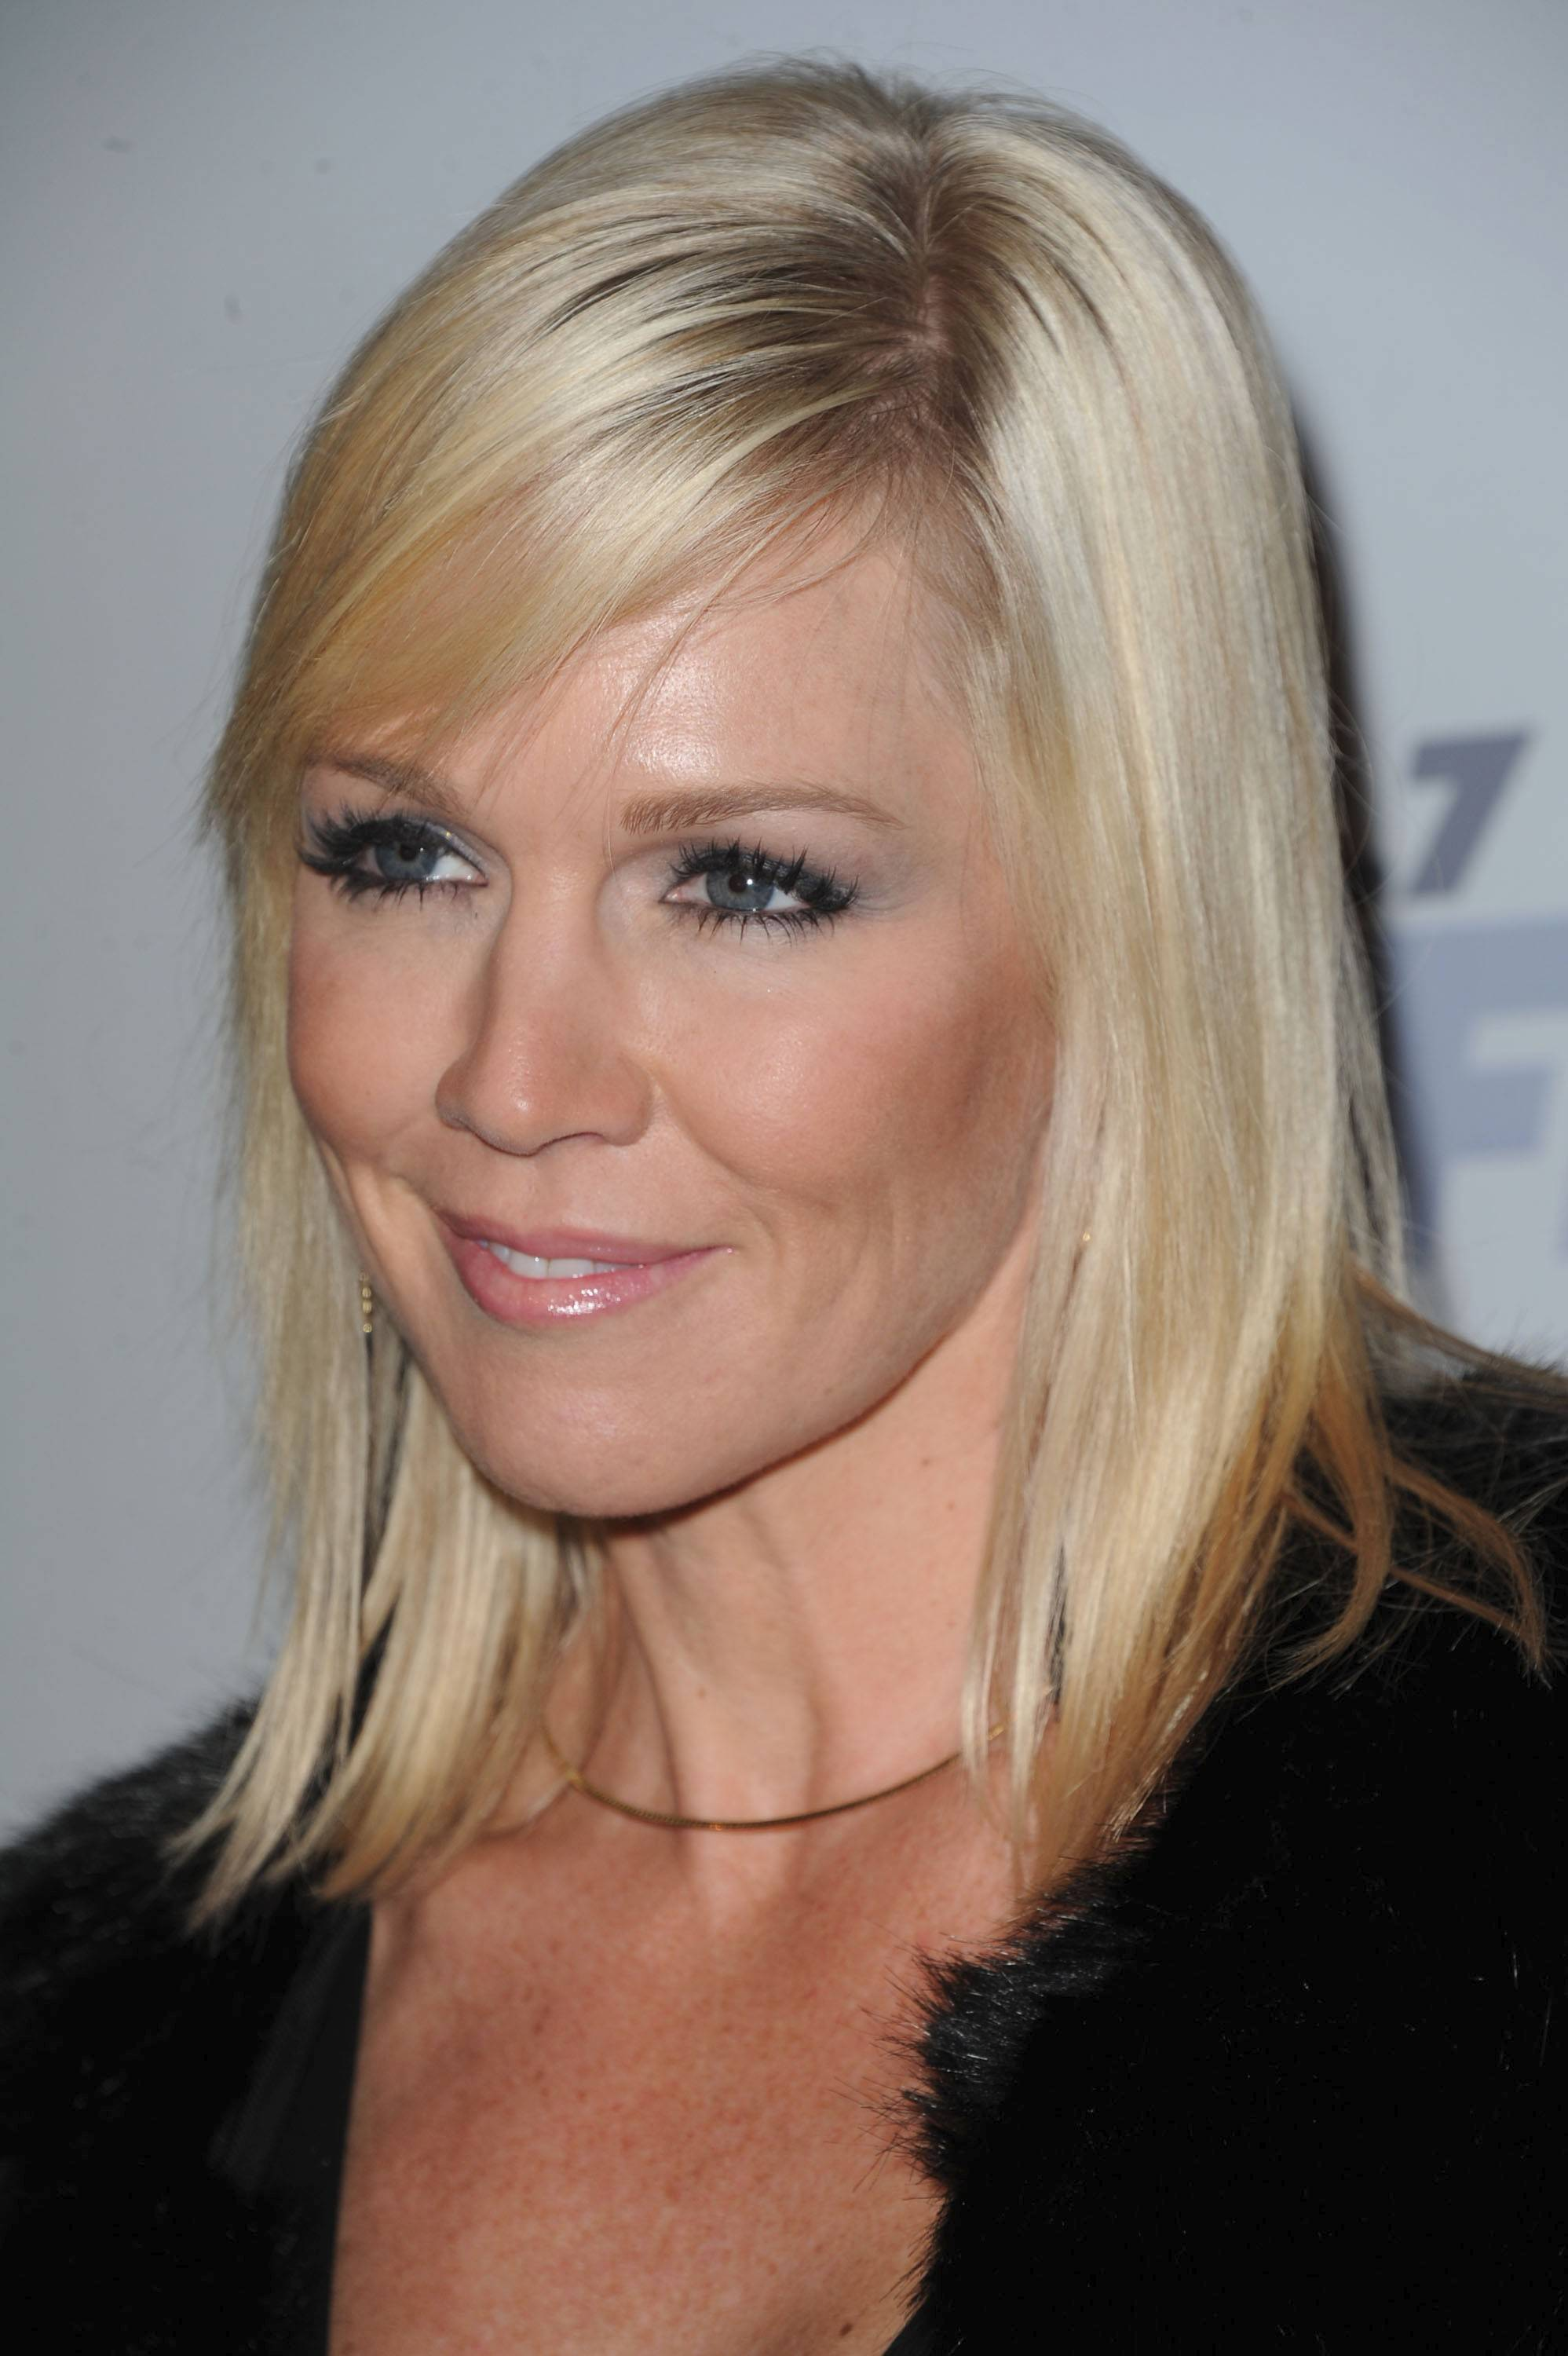 Jennie Garth arrives at KIIS FM's Jingle Ball at Nokia Theatre LA Live on Saturday, Dec. 1, 2012, in Los Angeles. (Photo by Katy Winn/Invision/AP)